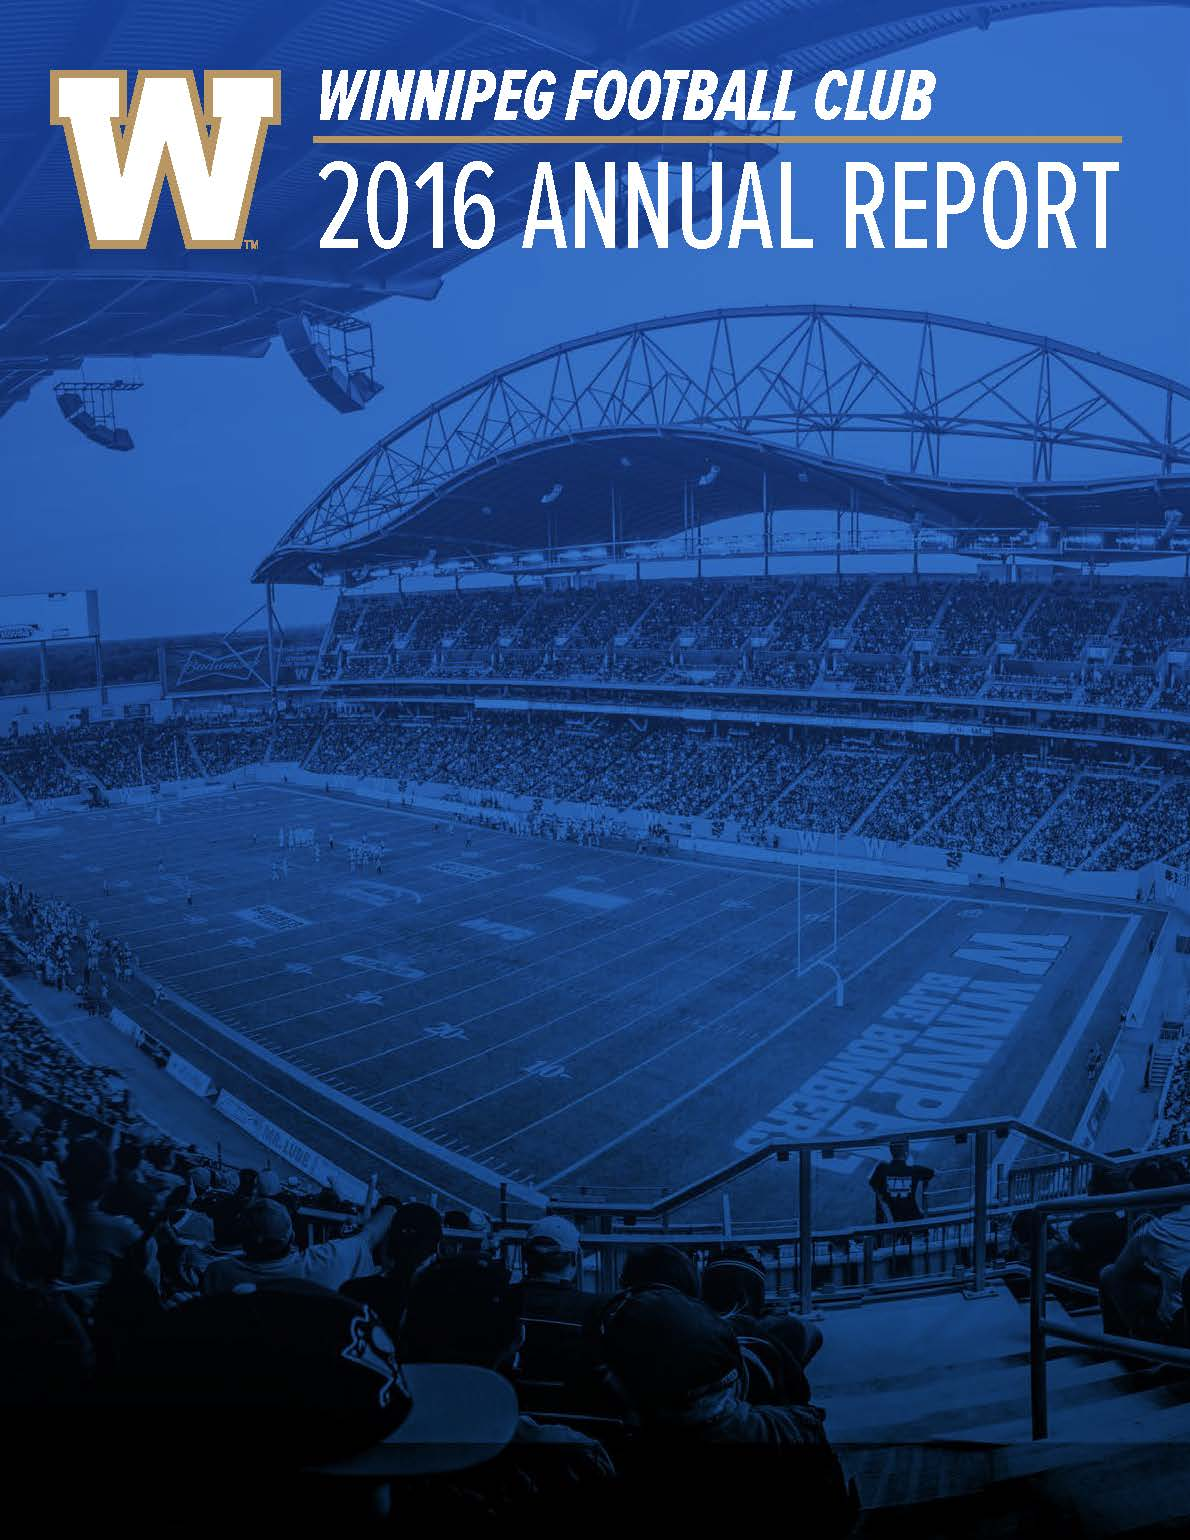 Blue Bombers 2016 Annual Report - Cover Page